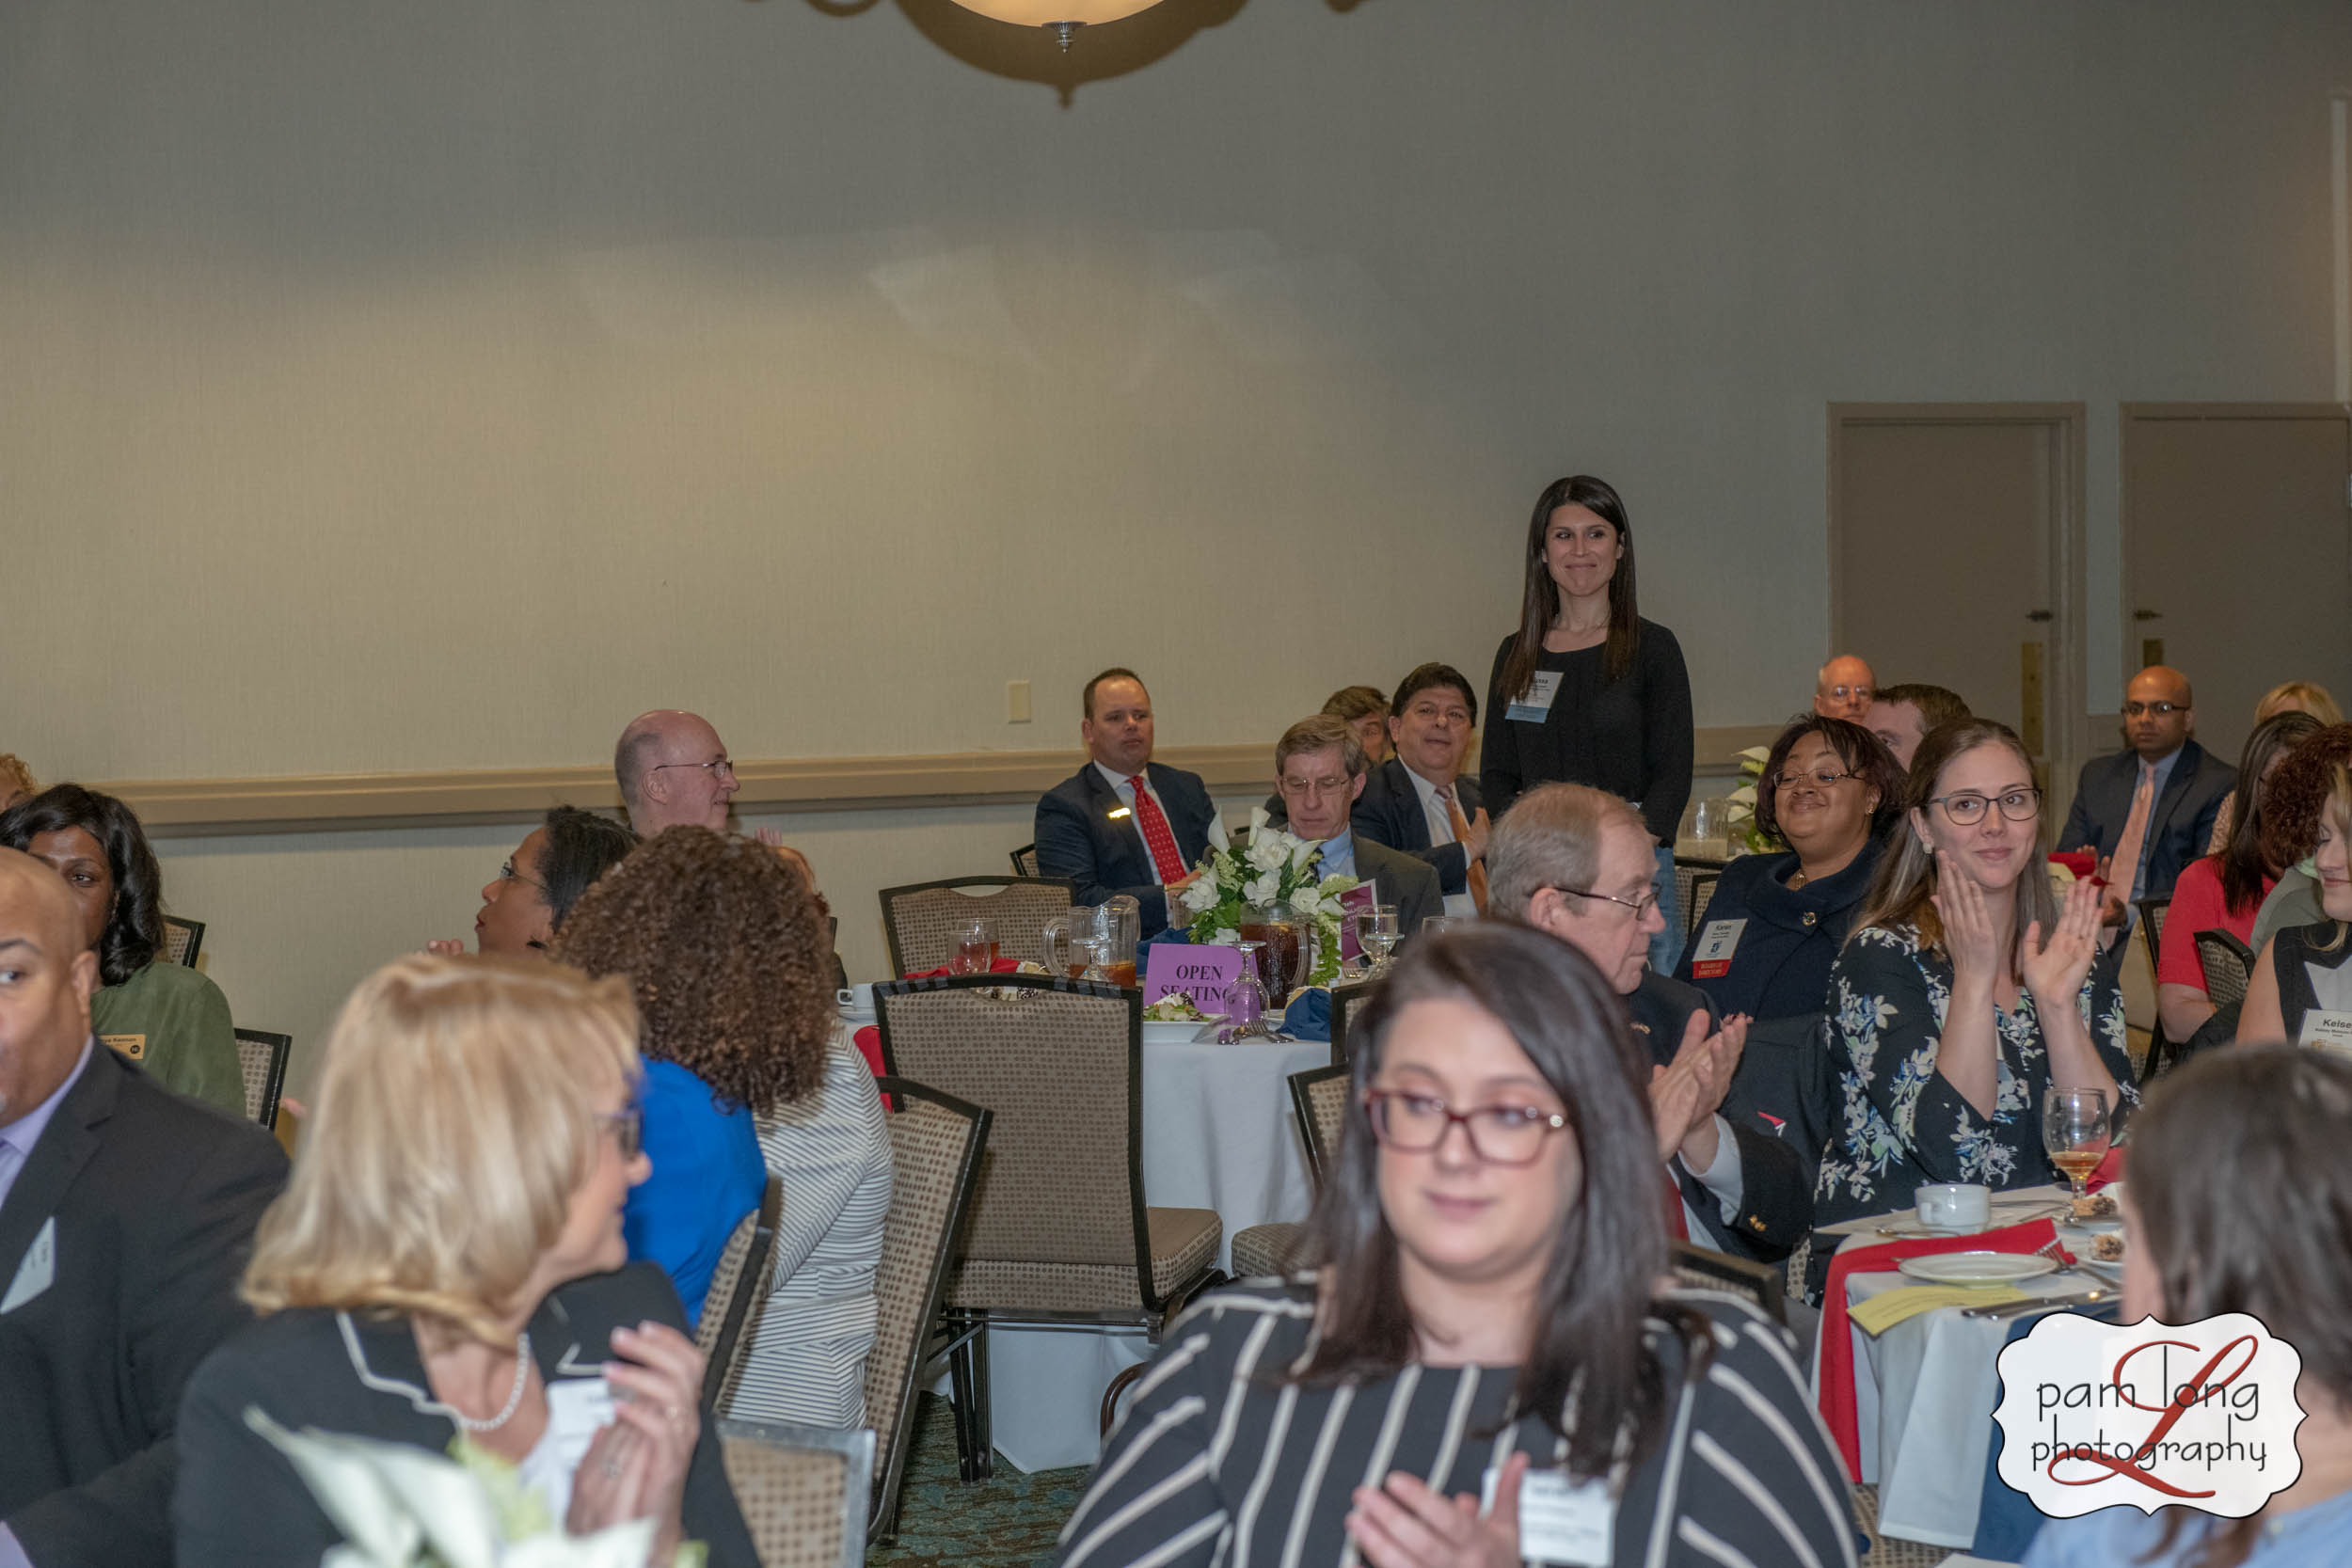 Pam-Long-Photography-HoCo-Chamber-50th-2019-107